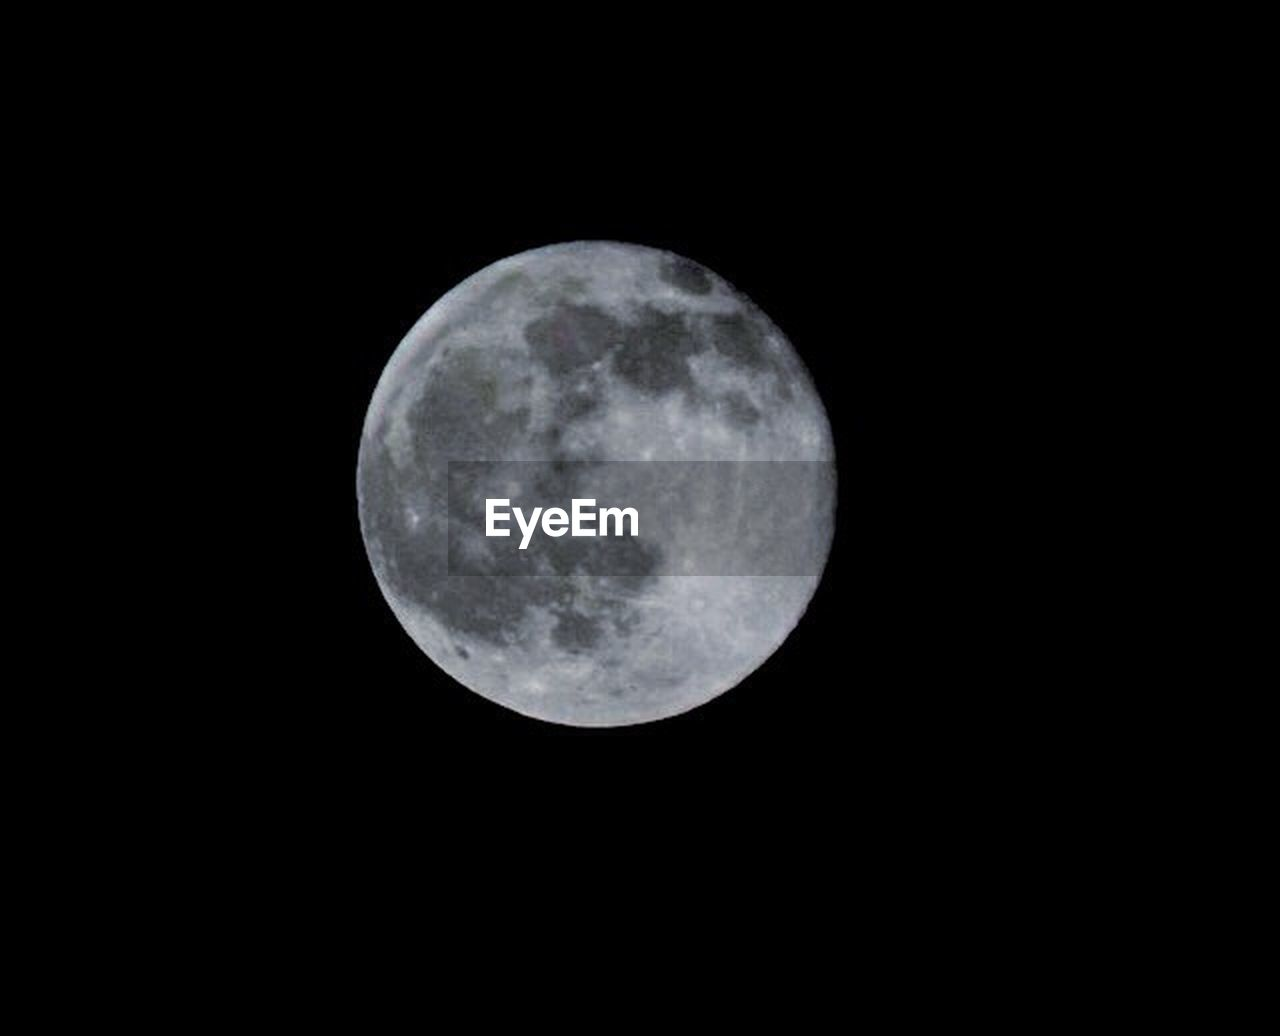 moon, night, astronomy, moon surface, full moon, no people, space exploration, nature, outdoors, beauty in nature, space, tranquility, scenics, close-up, sky, satellite view